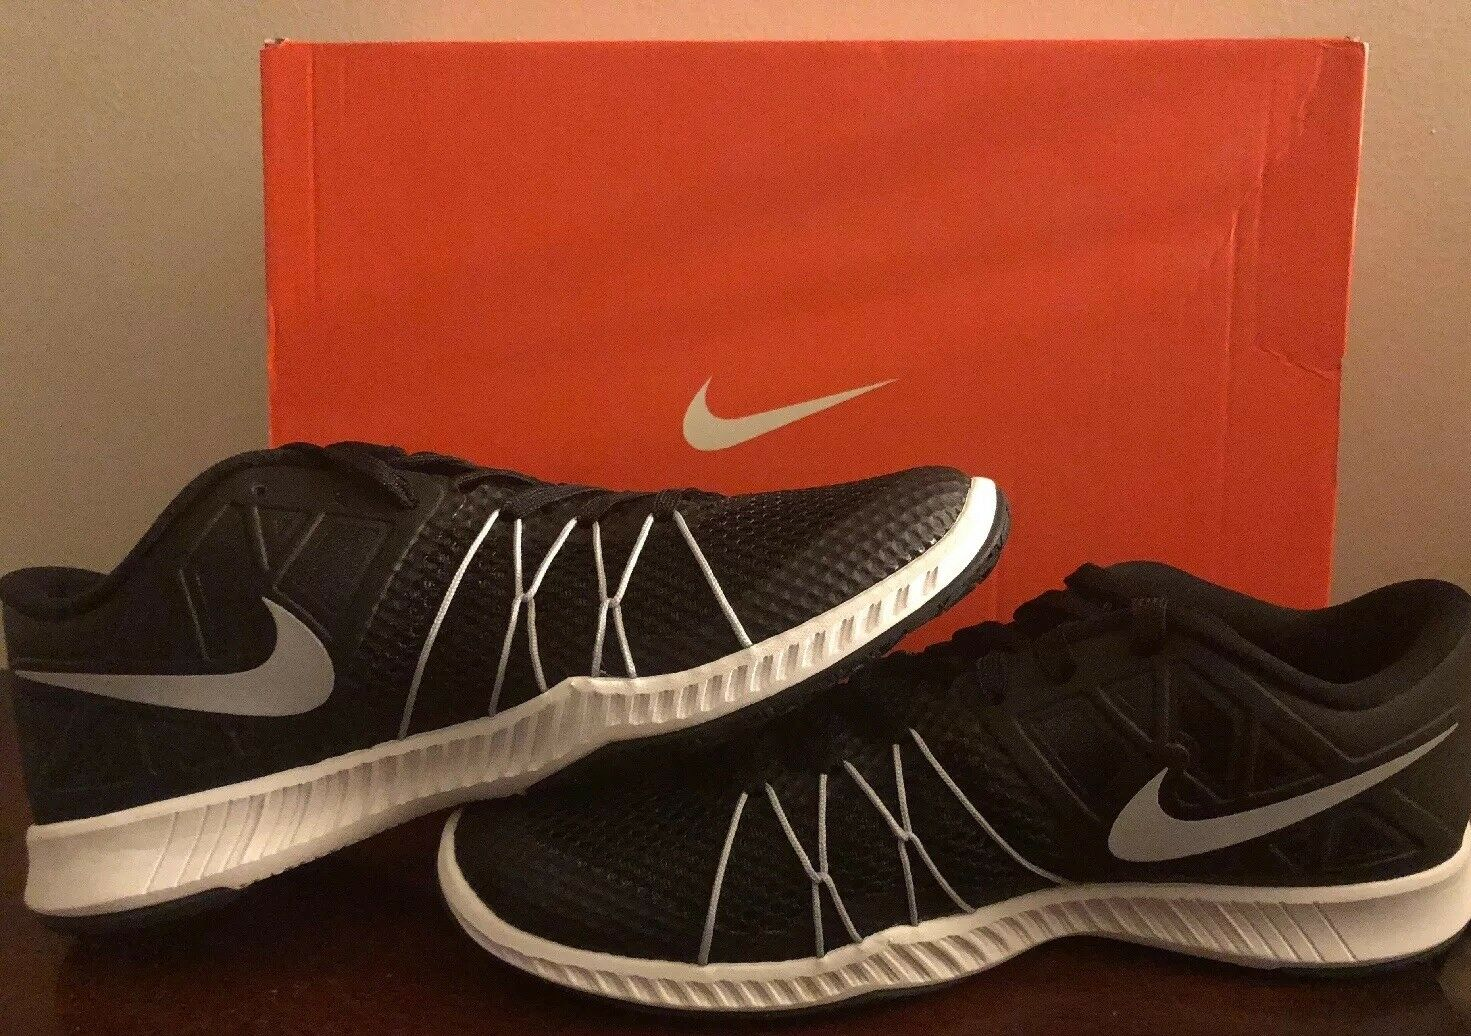 NIKE MEN'S ZOOM TRAIN INCREDIBLY FAST 844803 001 SIZE 8.5 BRAND NEW